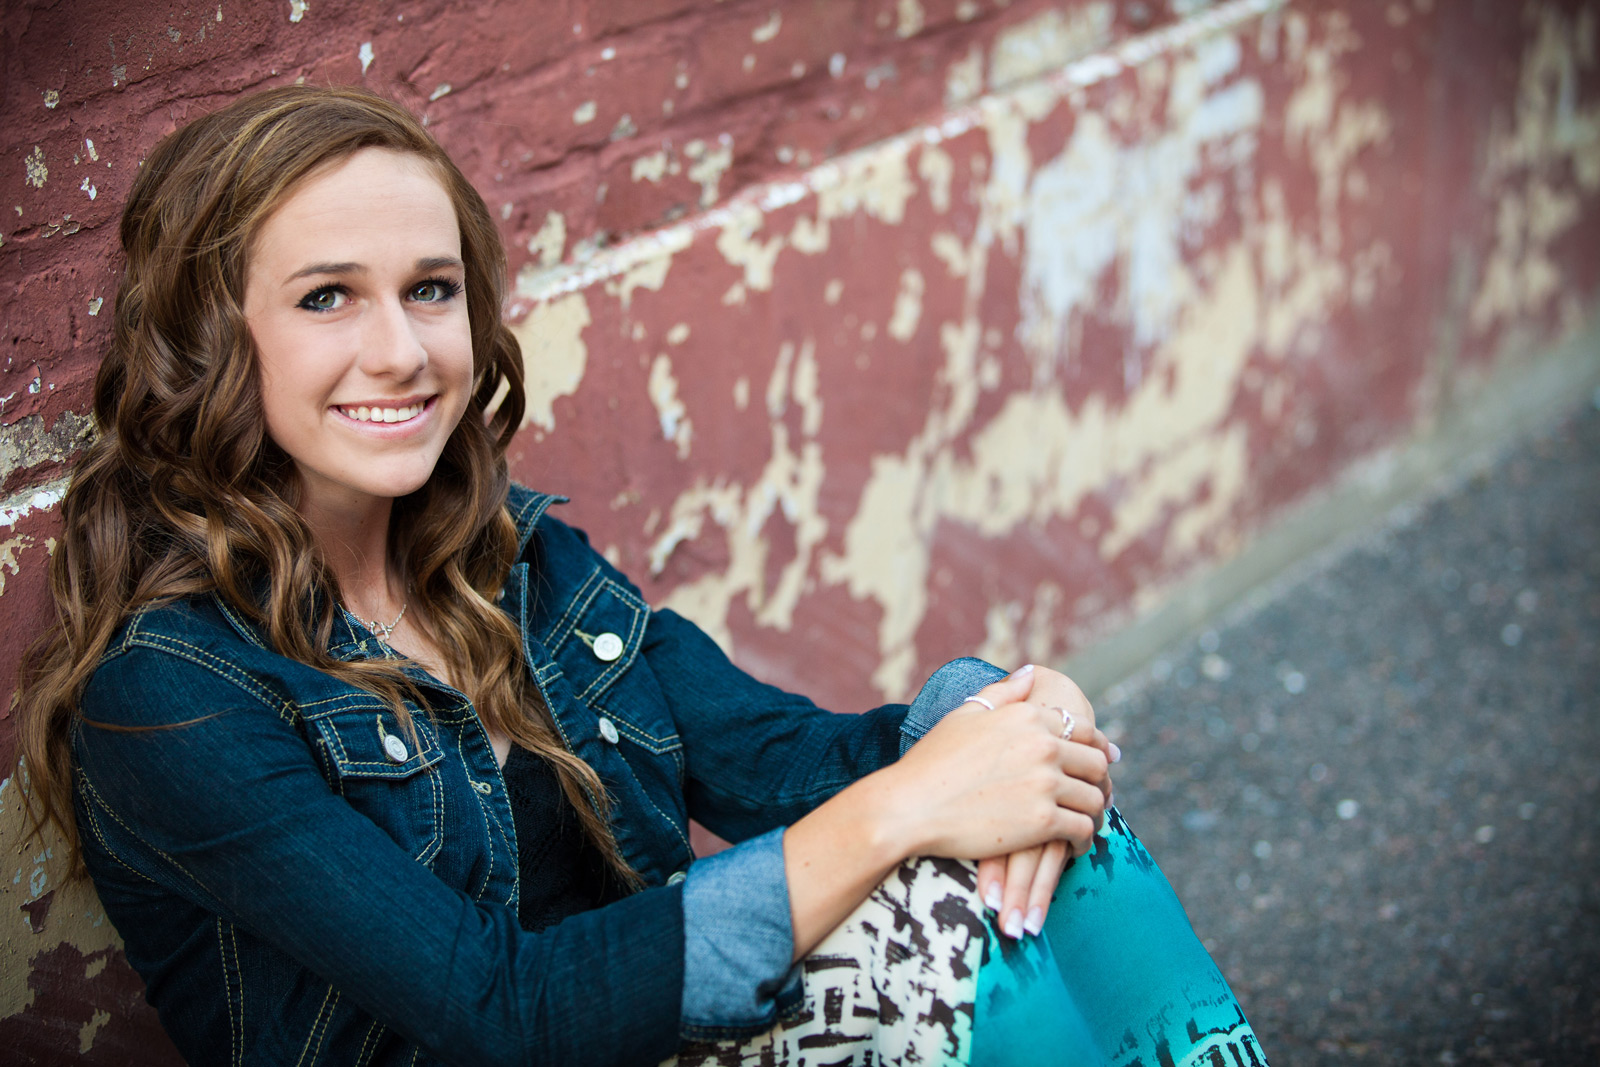 Urban senior portraits session